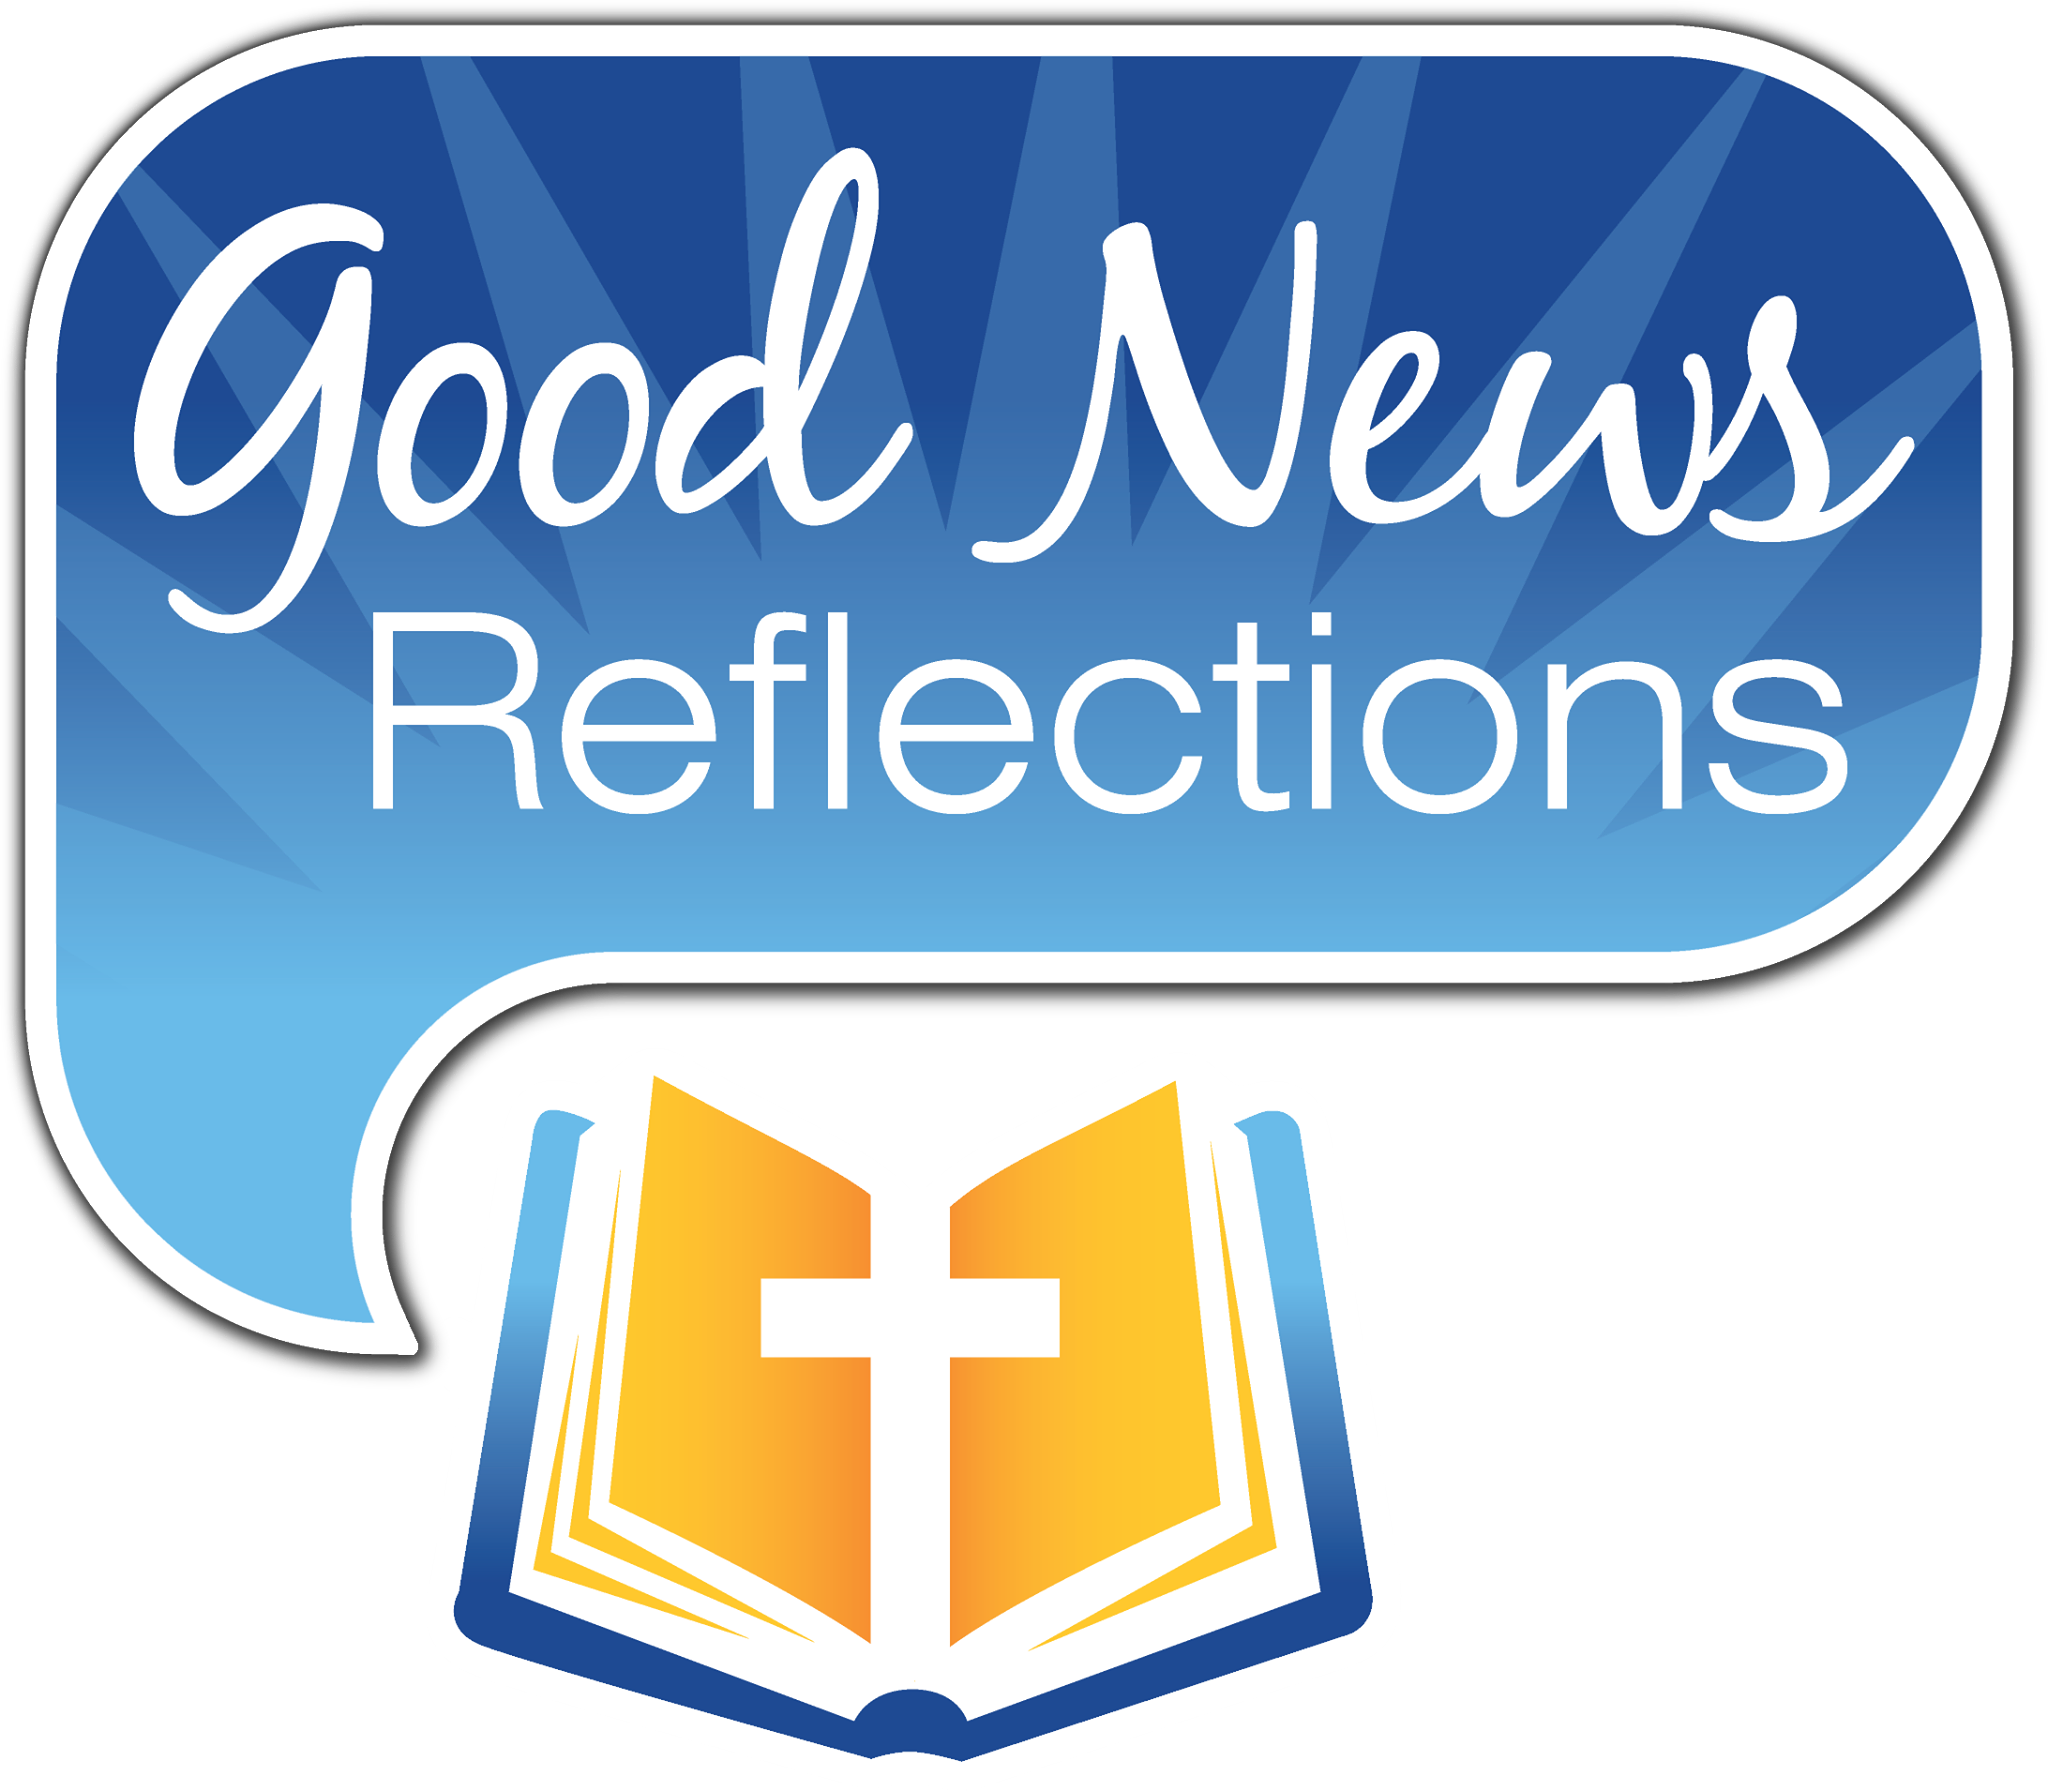 Good News Reflection for Friday June 21, 2019